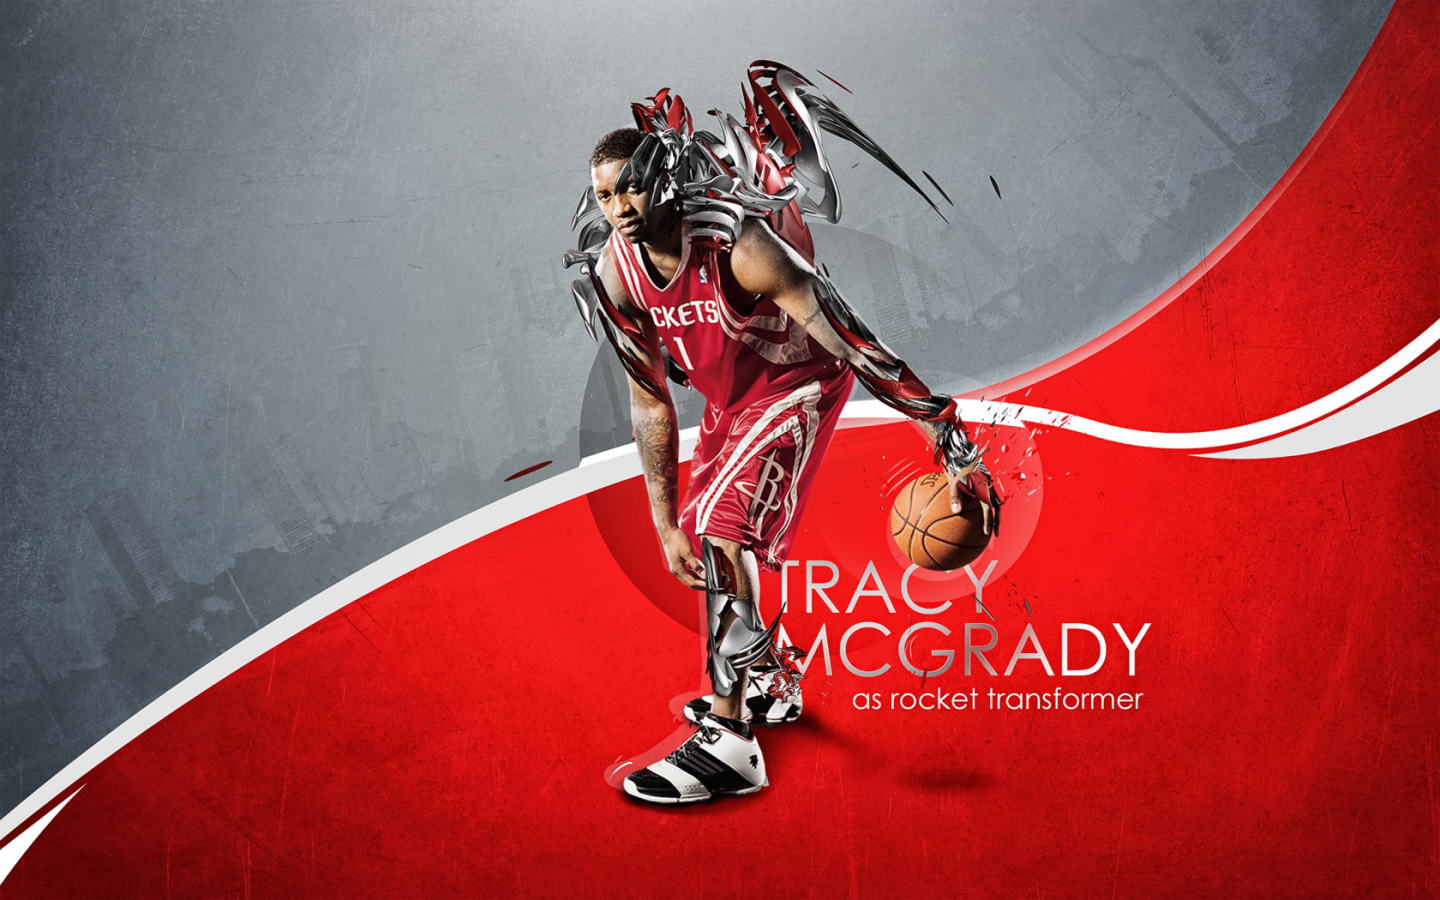 tracy-mcgrady-wallpaper-for-1440x900-widescreen-8-40 jpgTracy Mcgrady Wallpaper